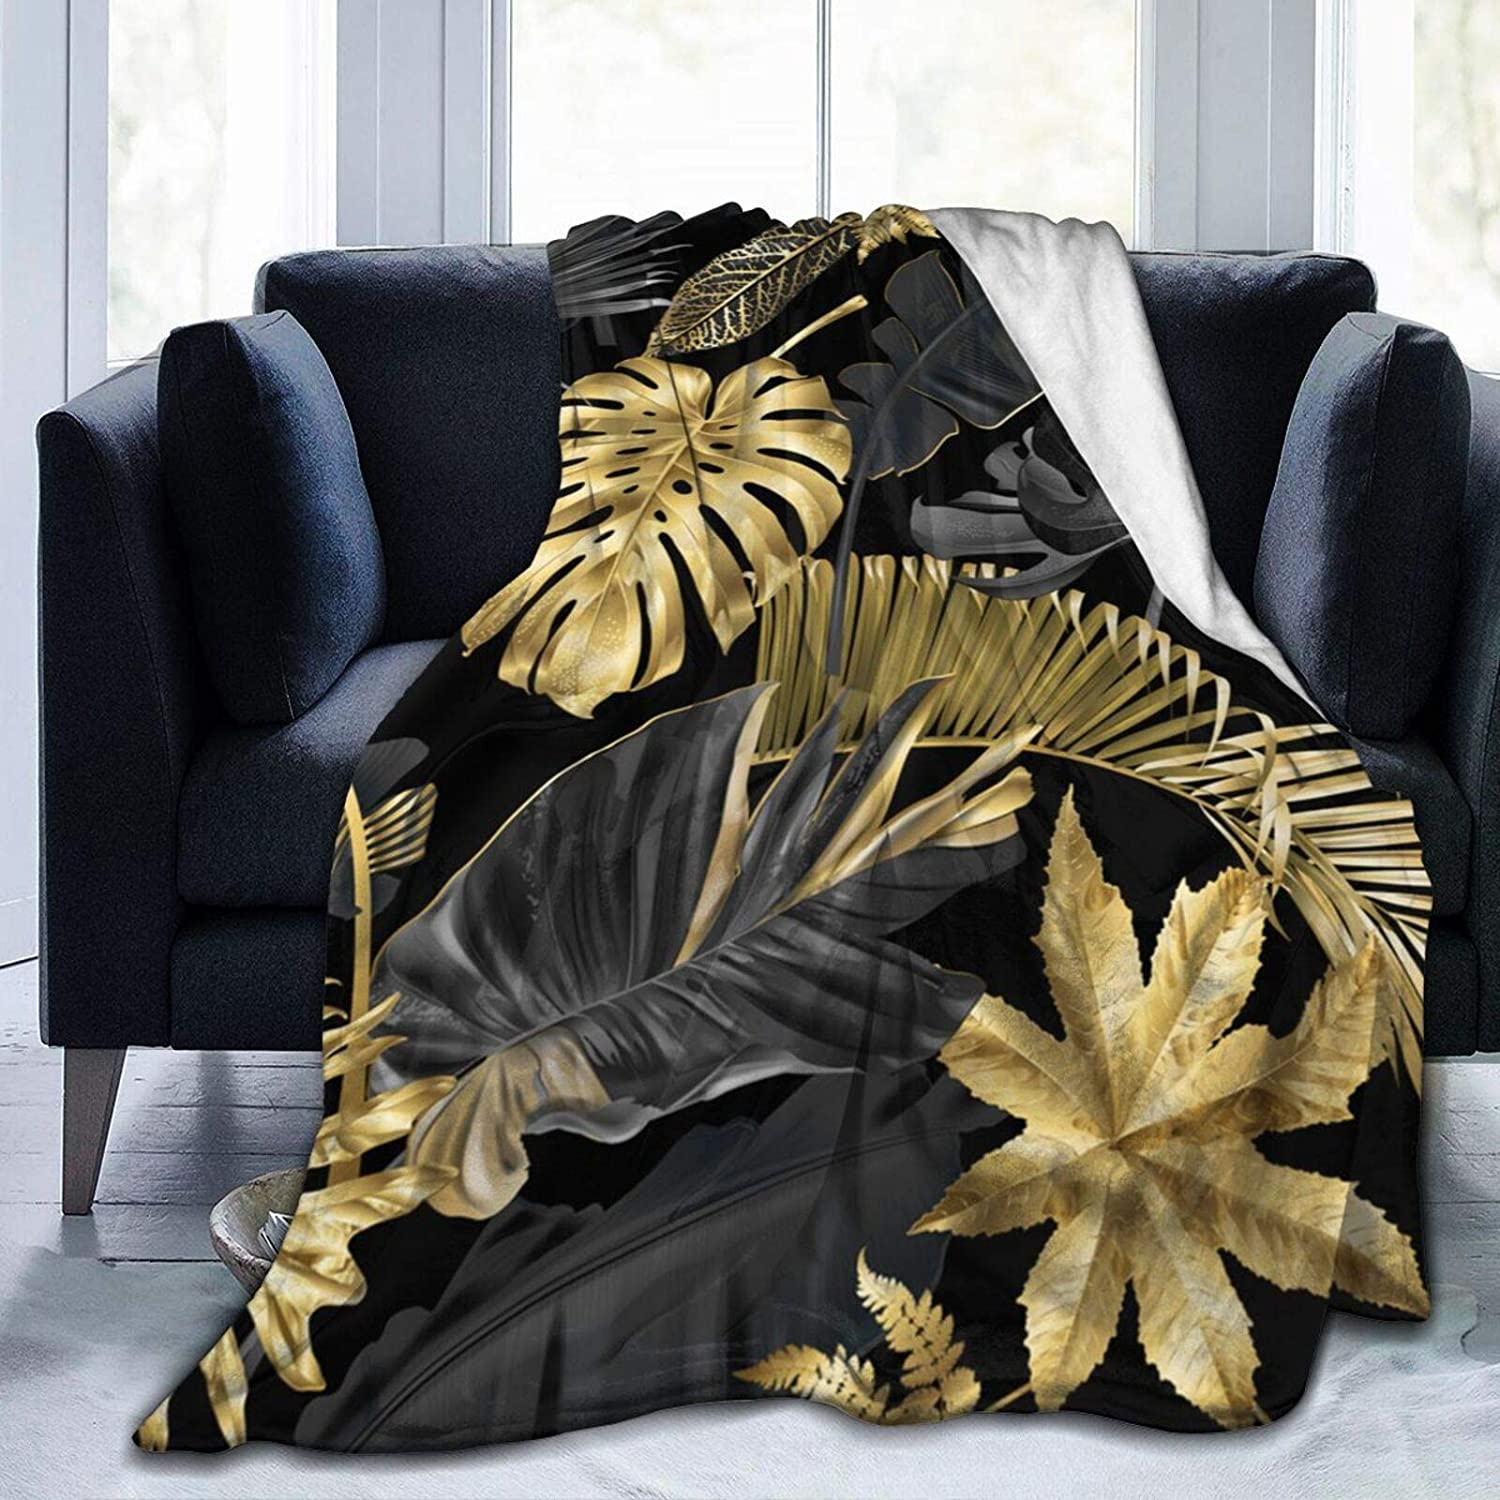 Gold and Genuine Free Shipping Black Tropical Leaves Comfortable Blanket Ranking TOP13 Supe Soft